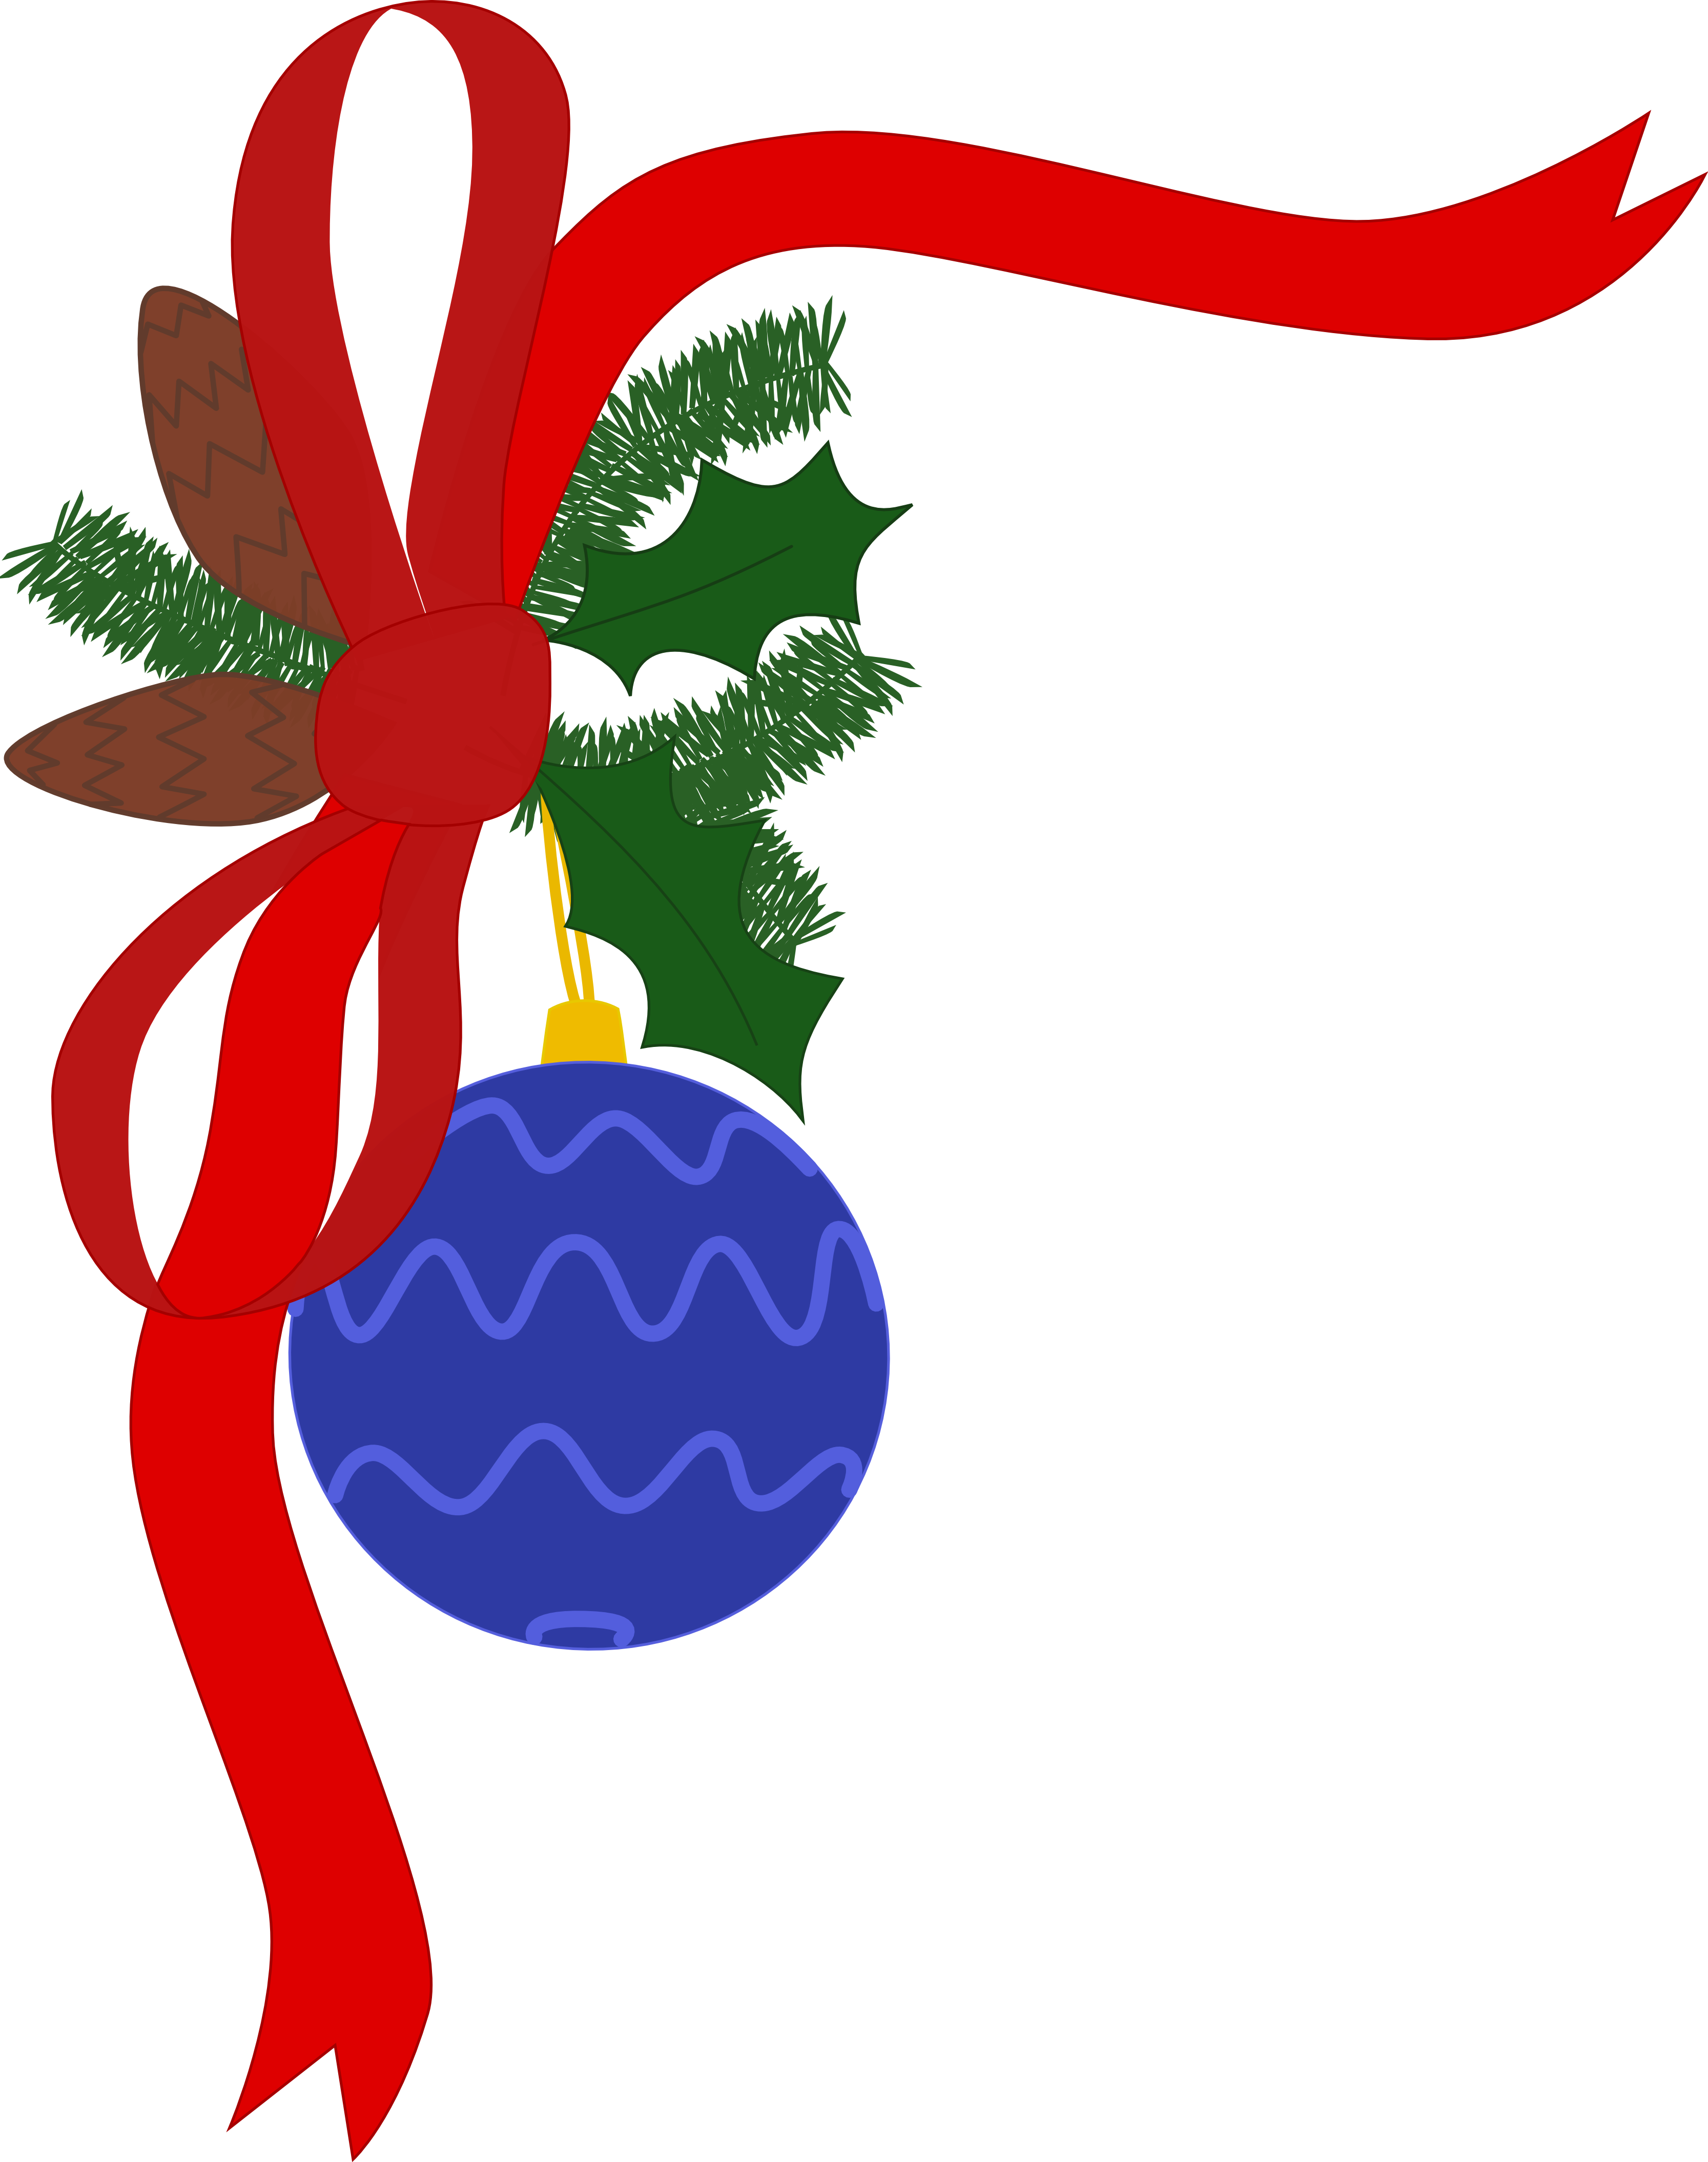 Free peaceful christmas cliparts. Hope clipart holiday peace